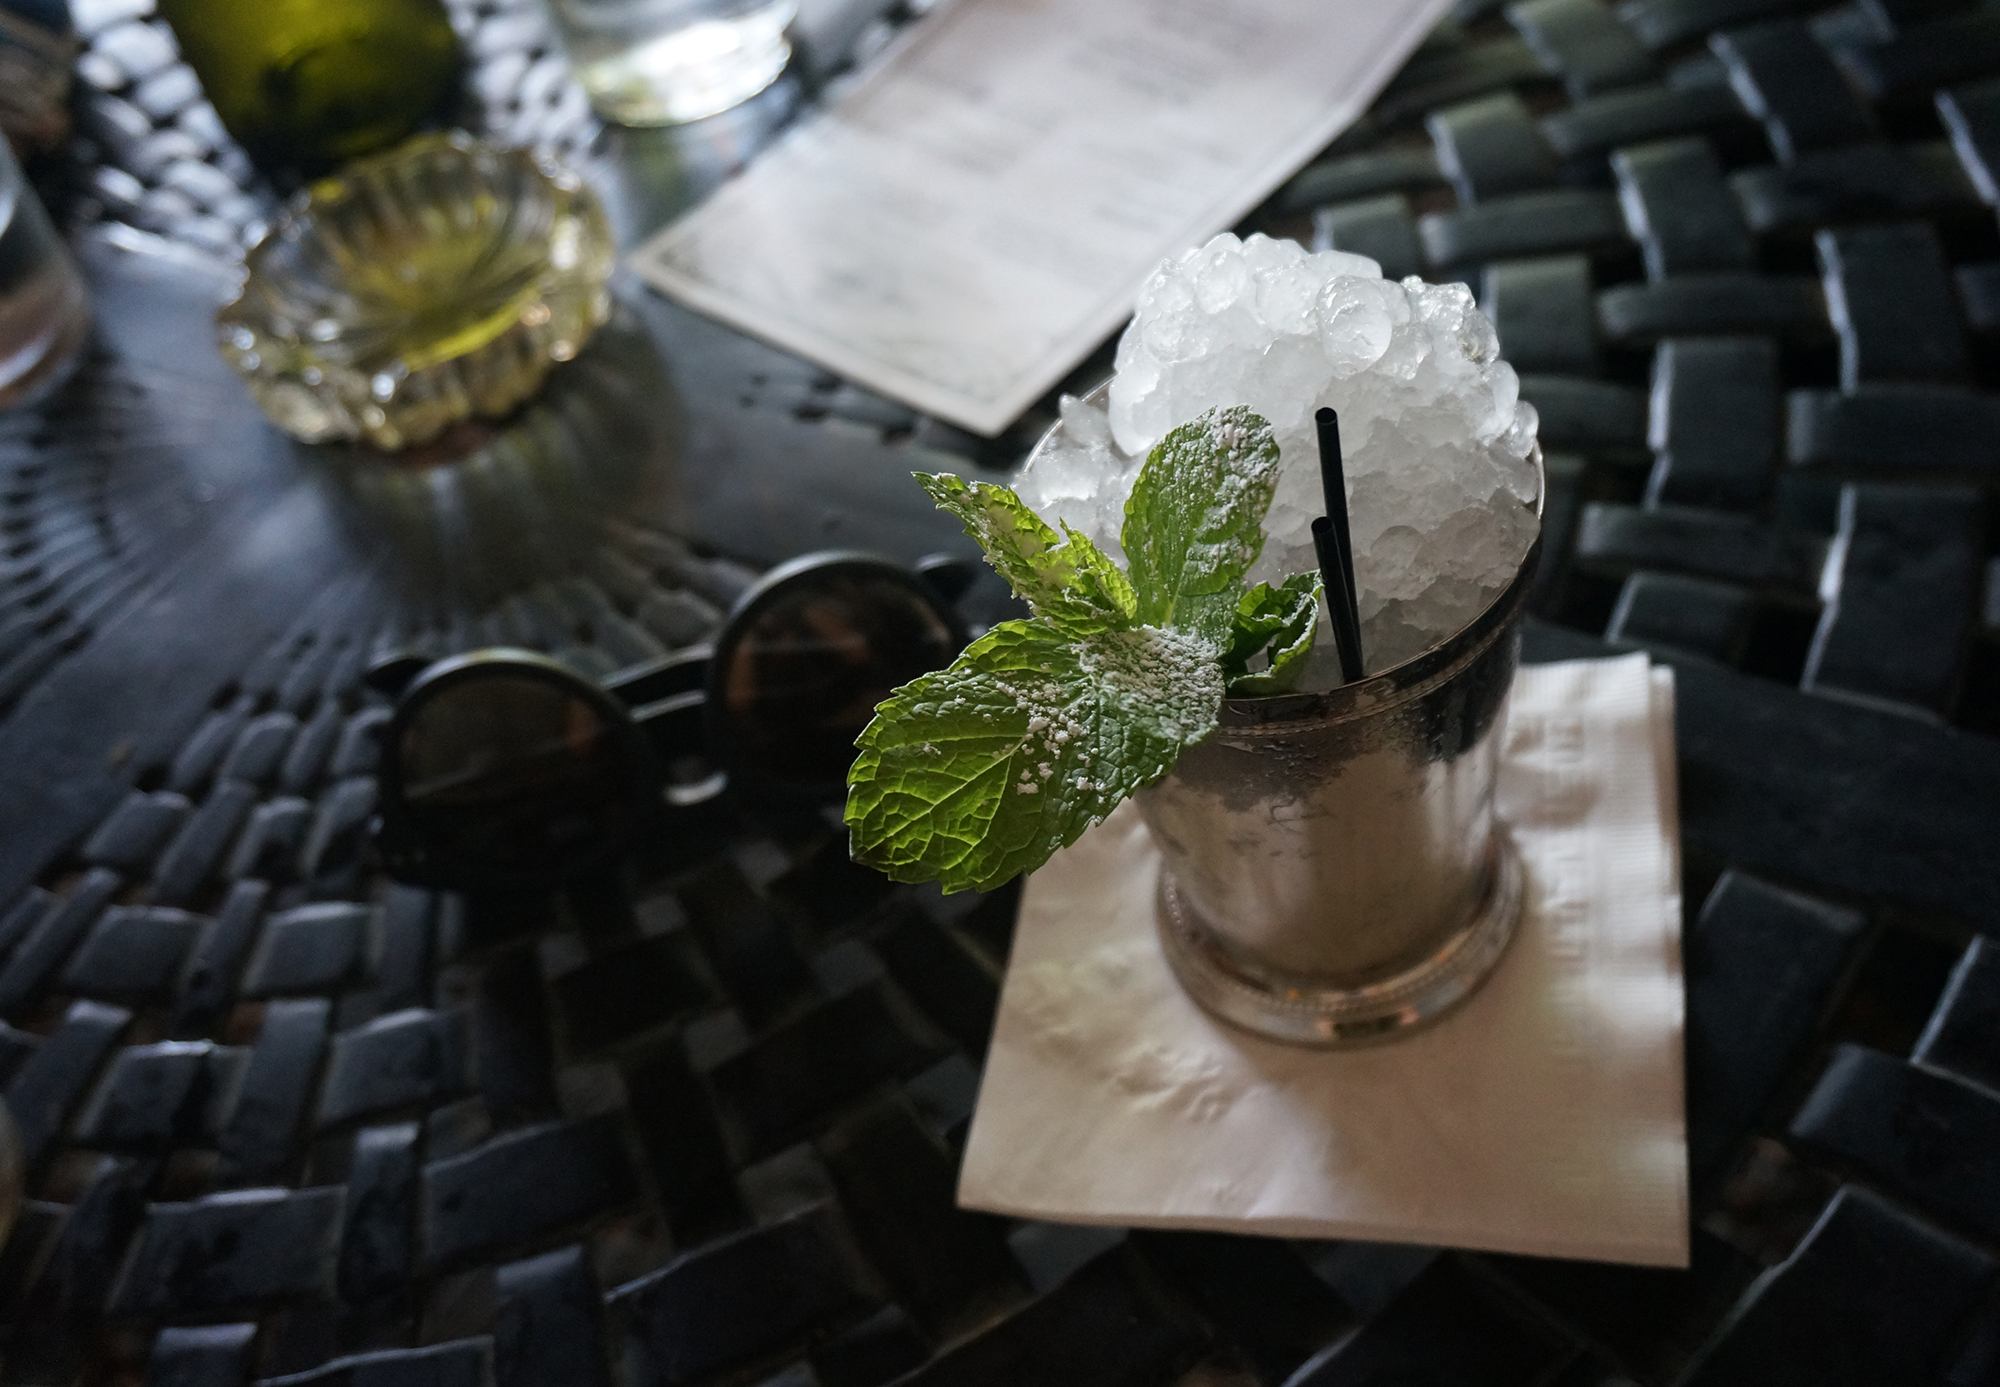 The classic Mint Julep at Julep / El clásico Mint Julep en Julep